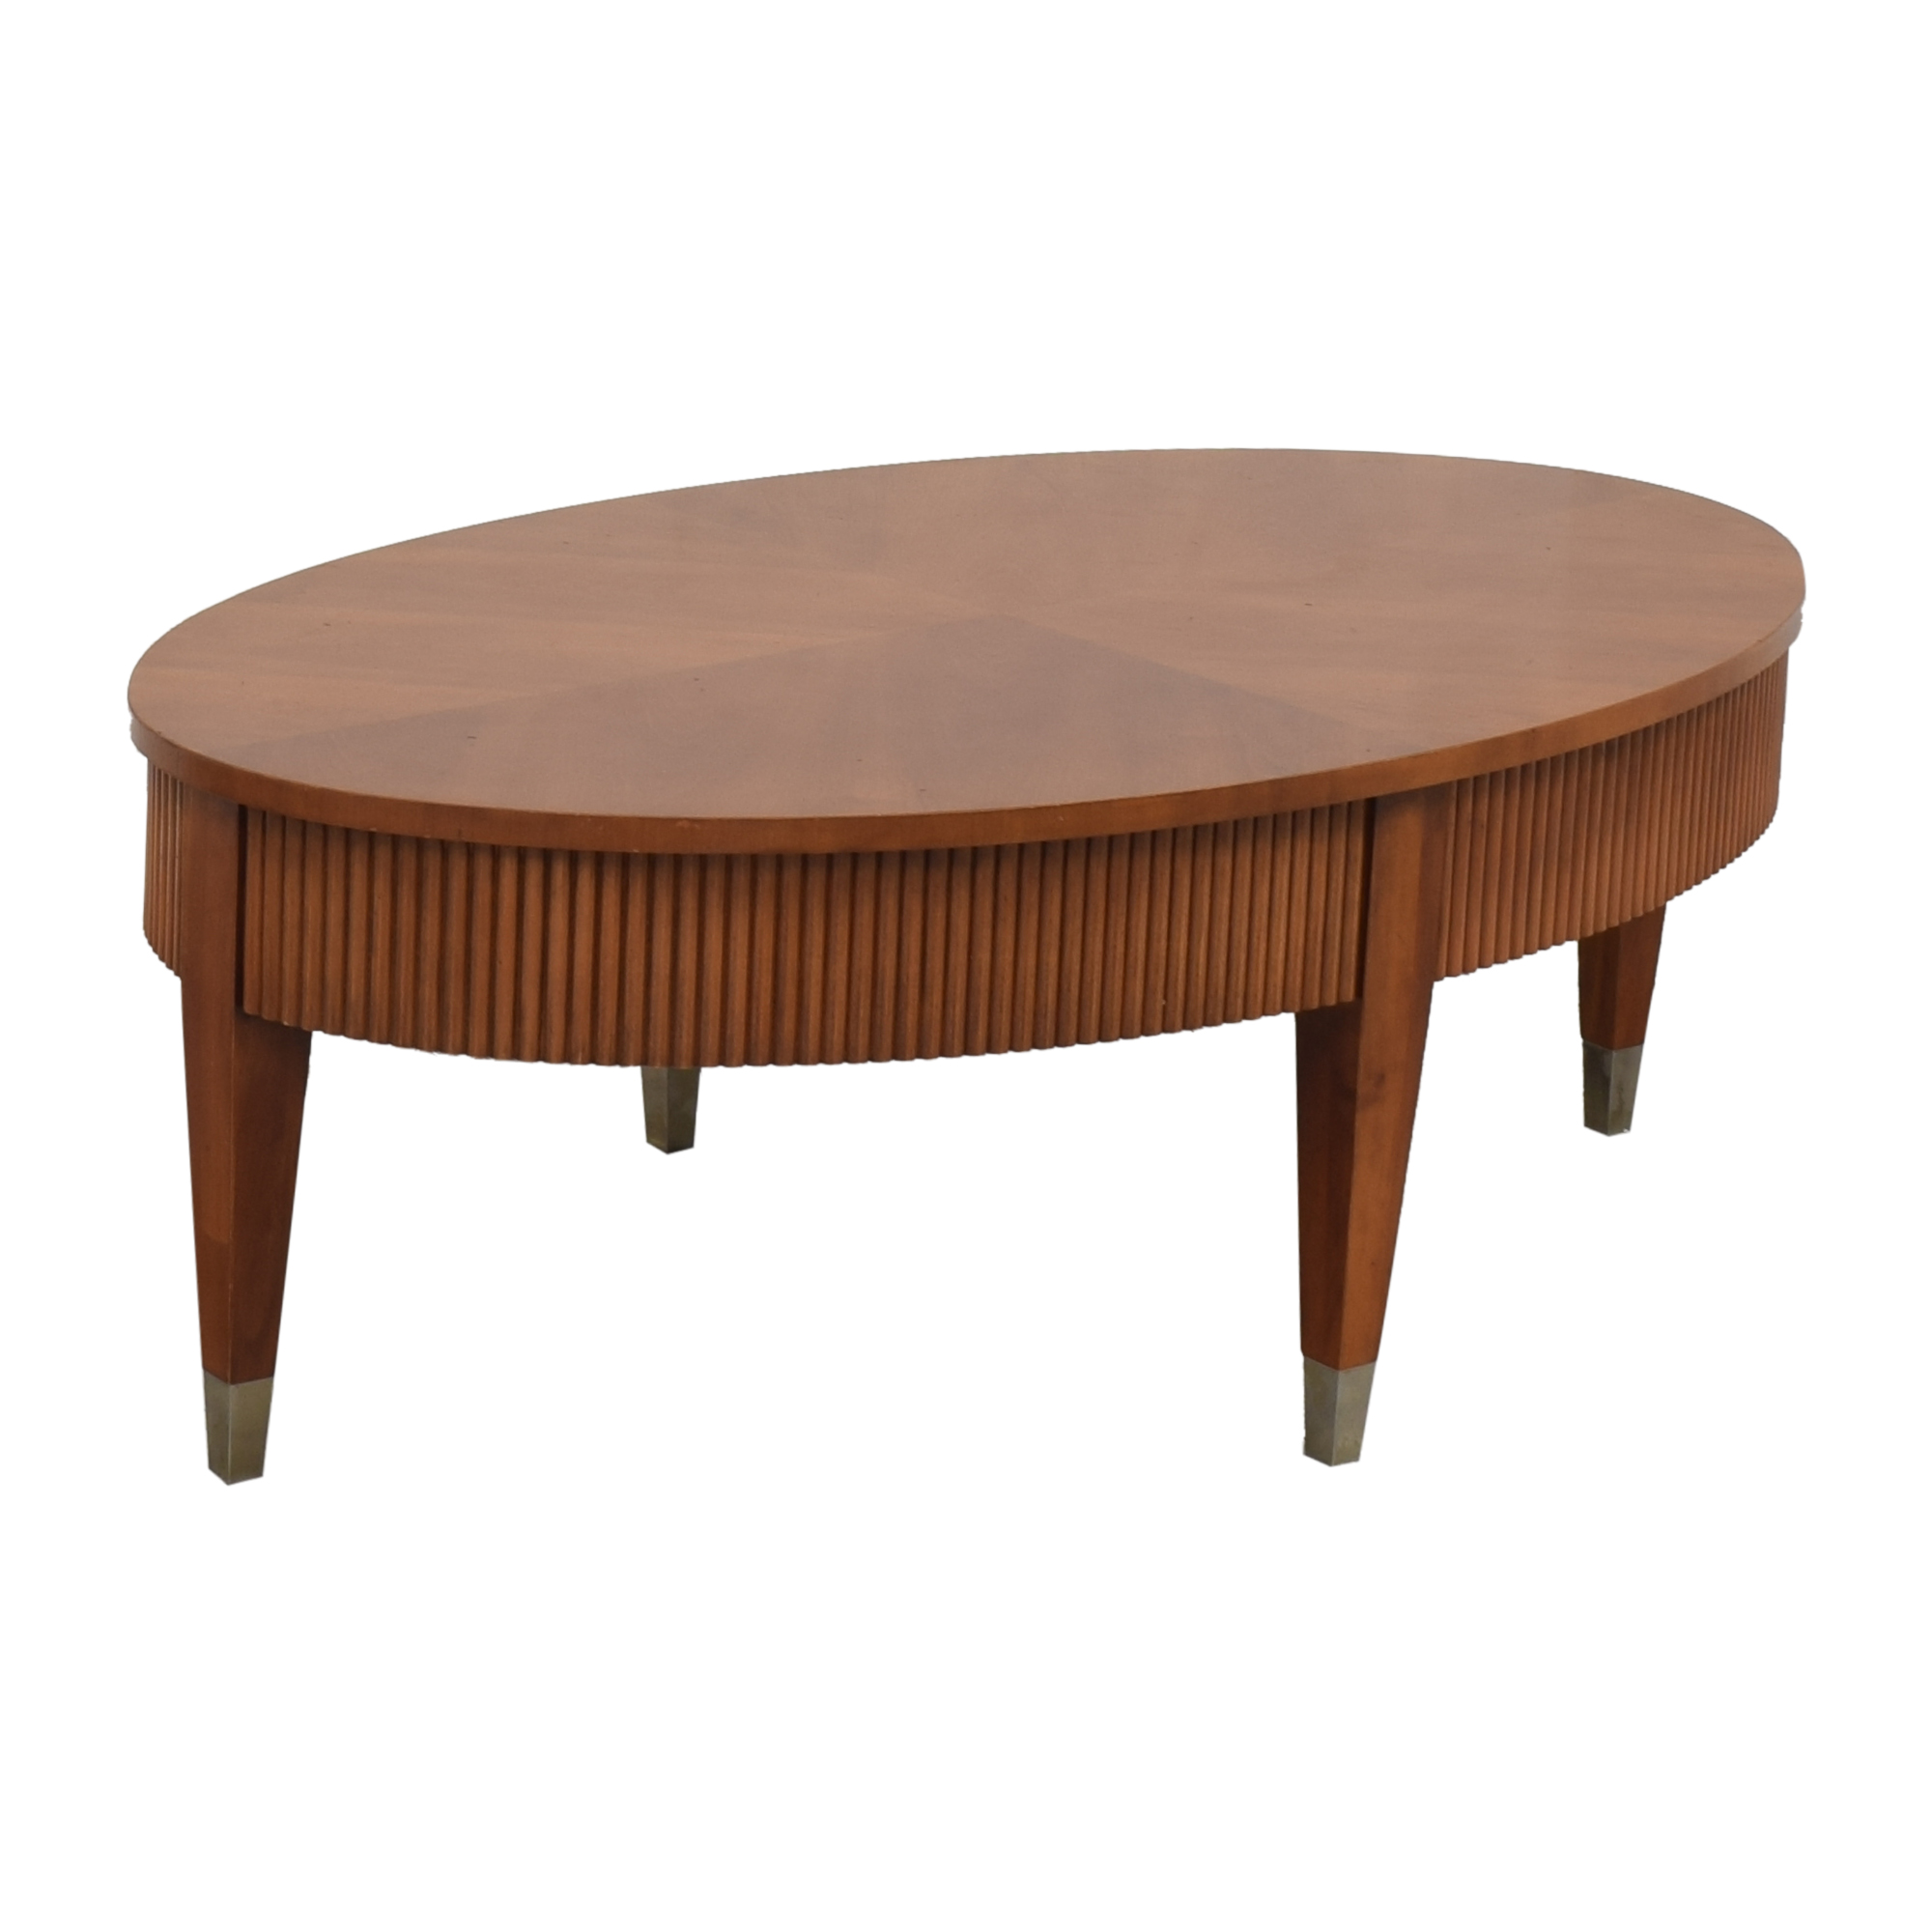 Ethan Allen Ethan Allen Avenue Oval Coffee Table coupon